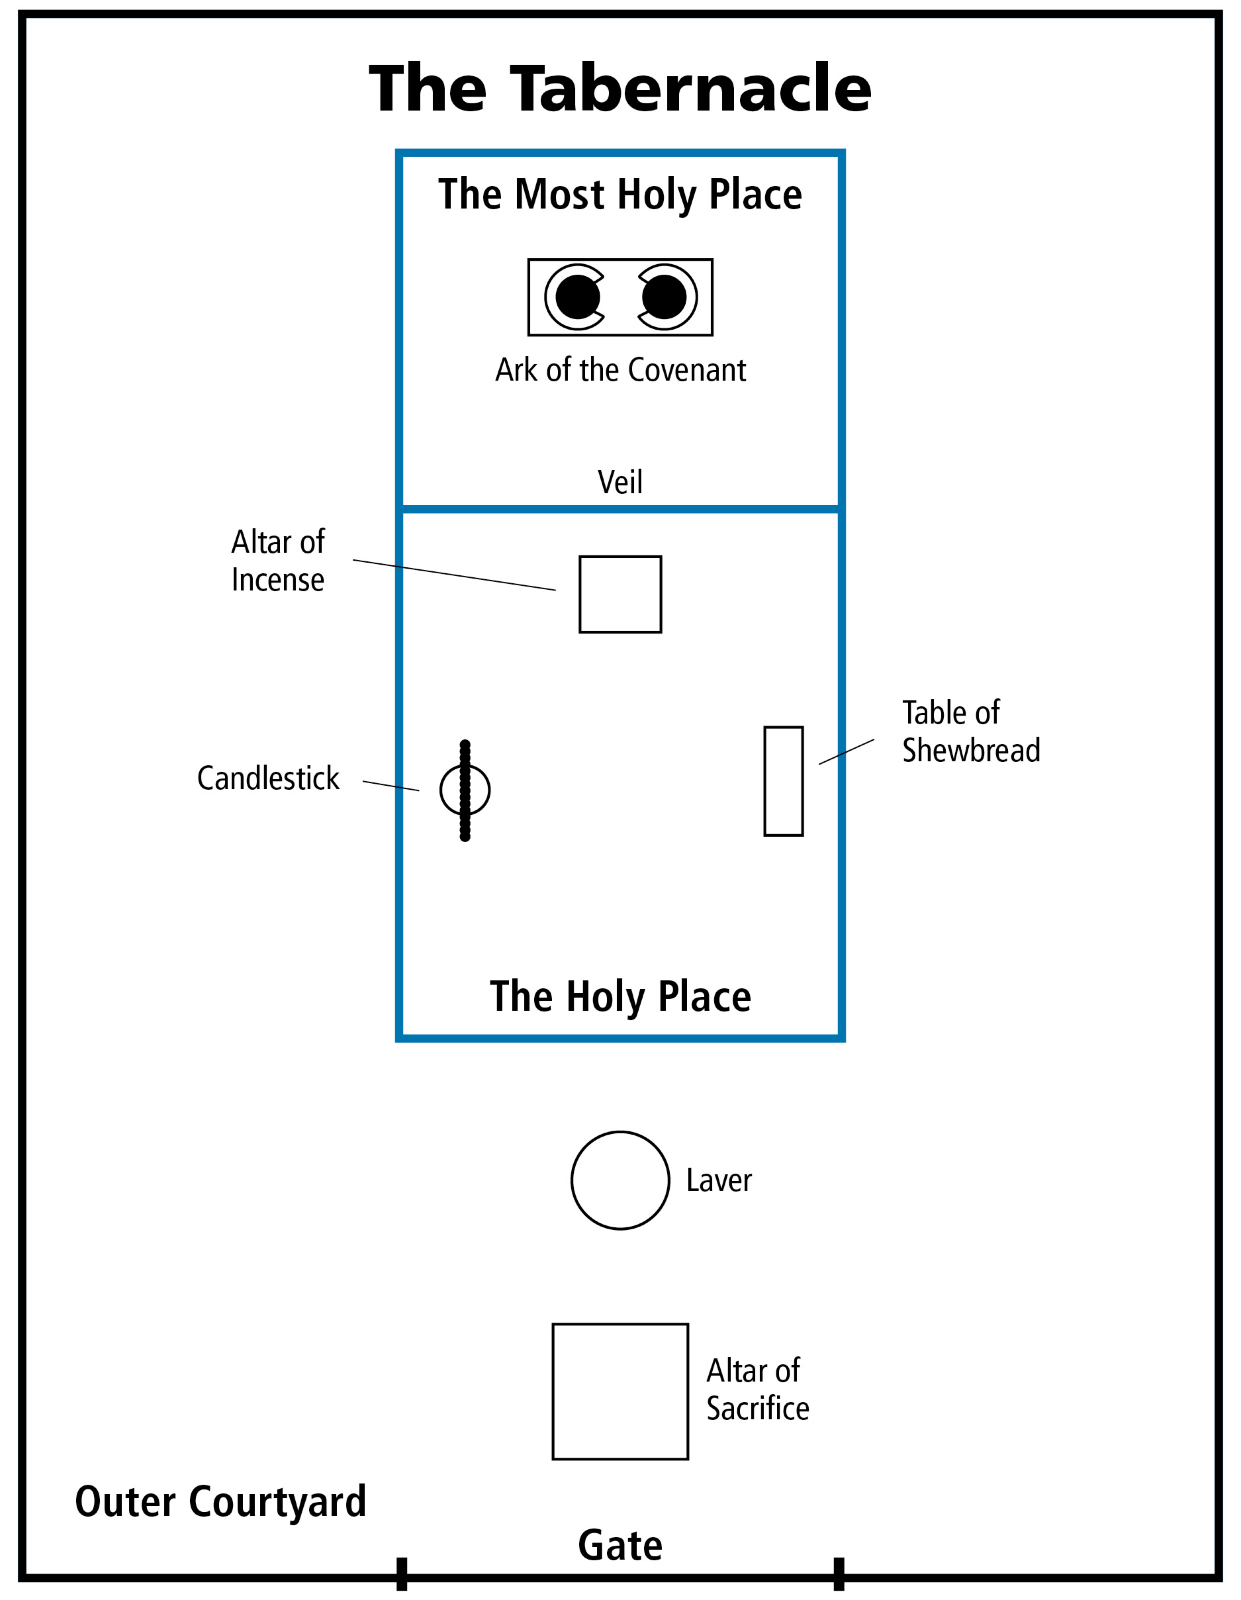 graphic about Printable Diagram of the Tabernacle called Diagram of the Tabernacle within the Wilderness